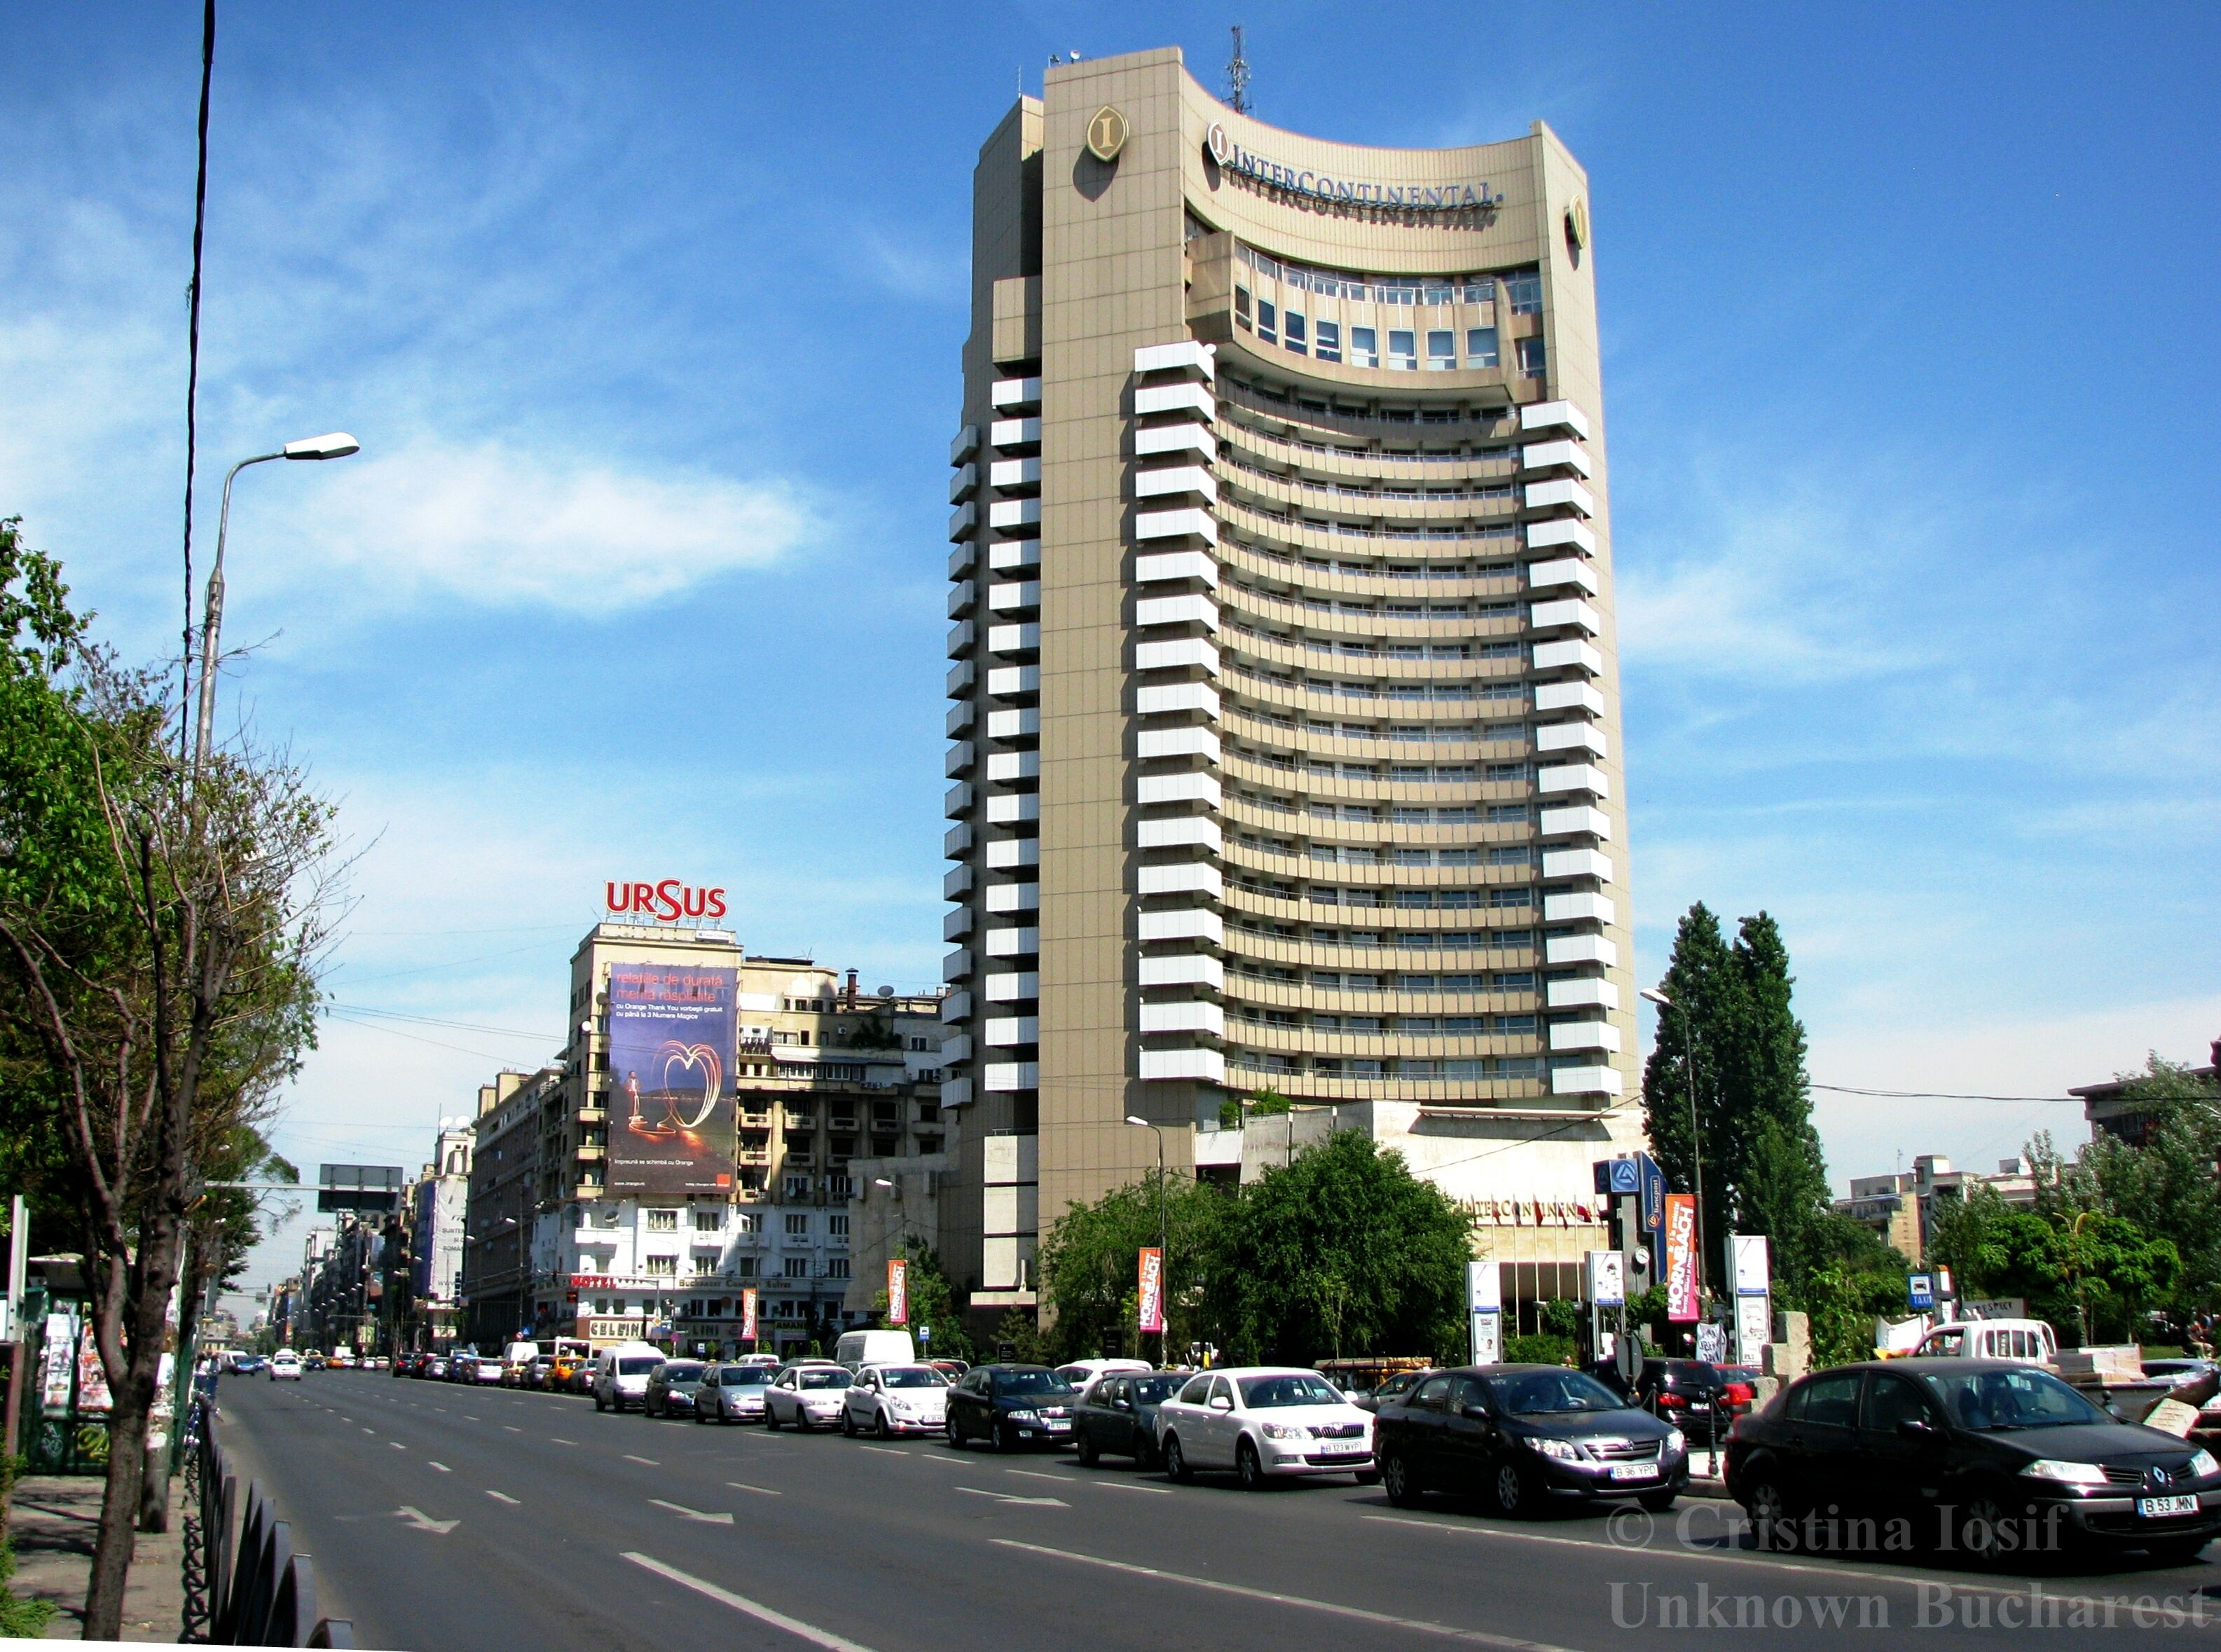 Bucharest S Intercontinental Hotel Symbolic Edifice Of